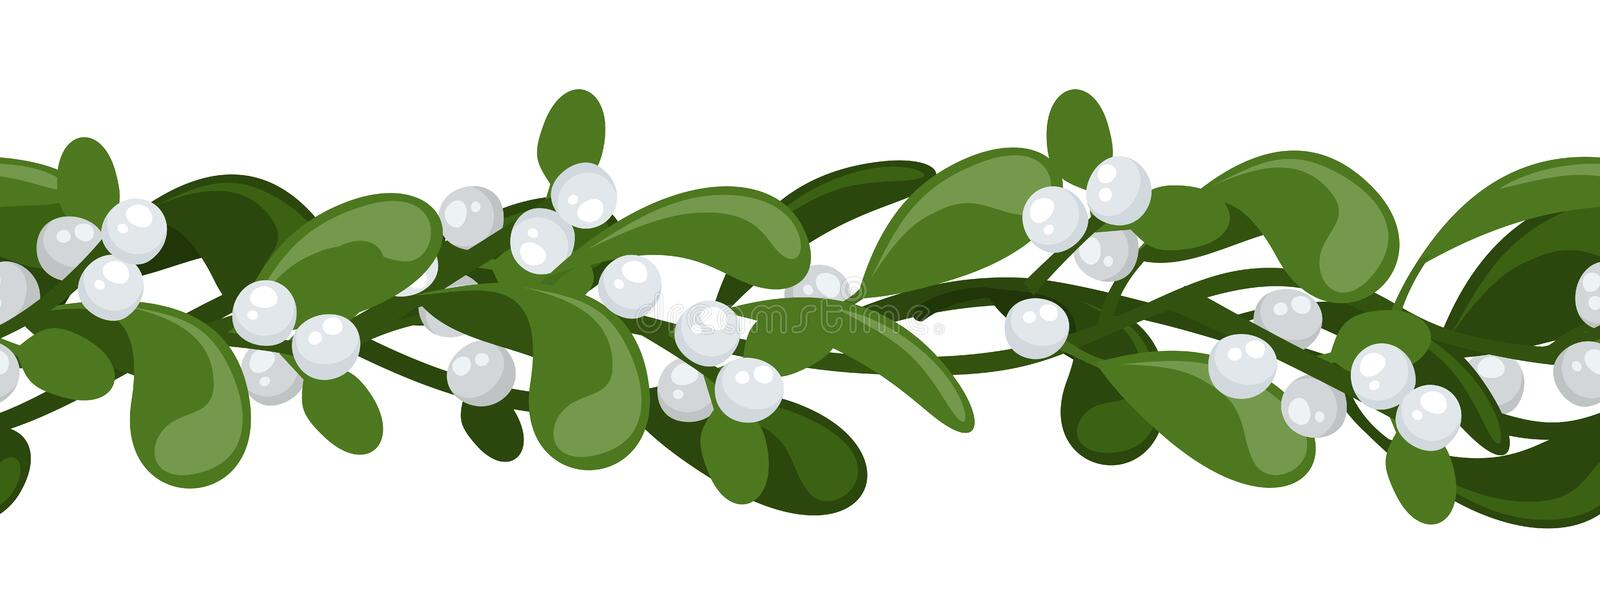 Download Horizontal Seamless Background With Mistletoe. Stock Vector - Image: 28073677